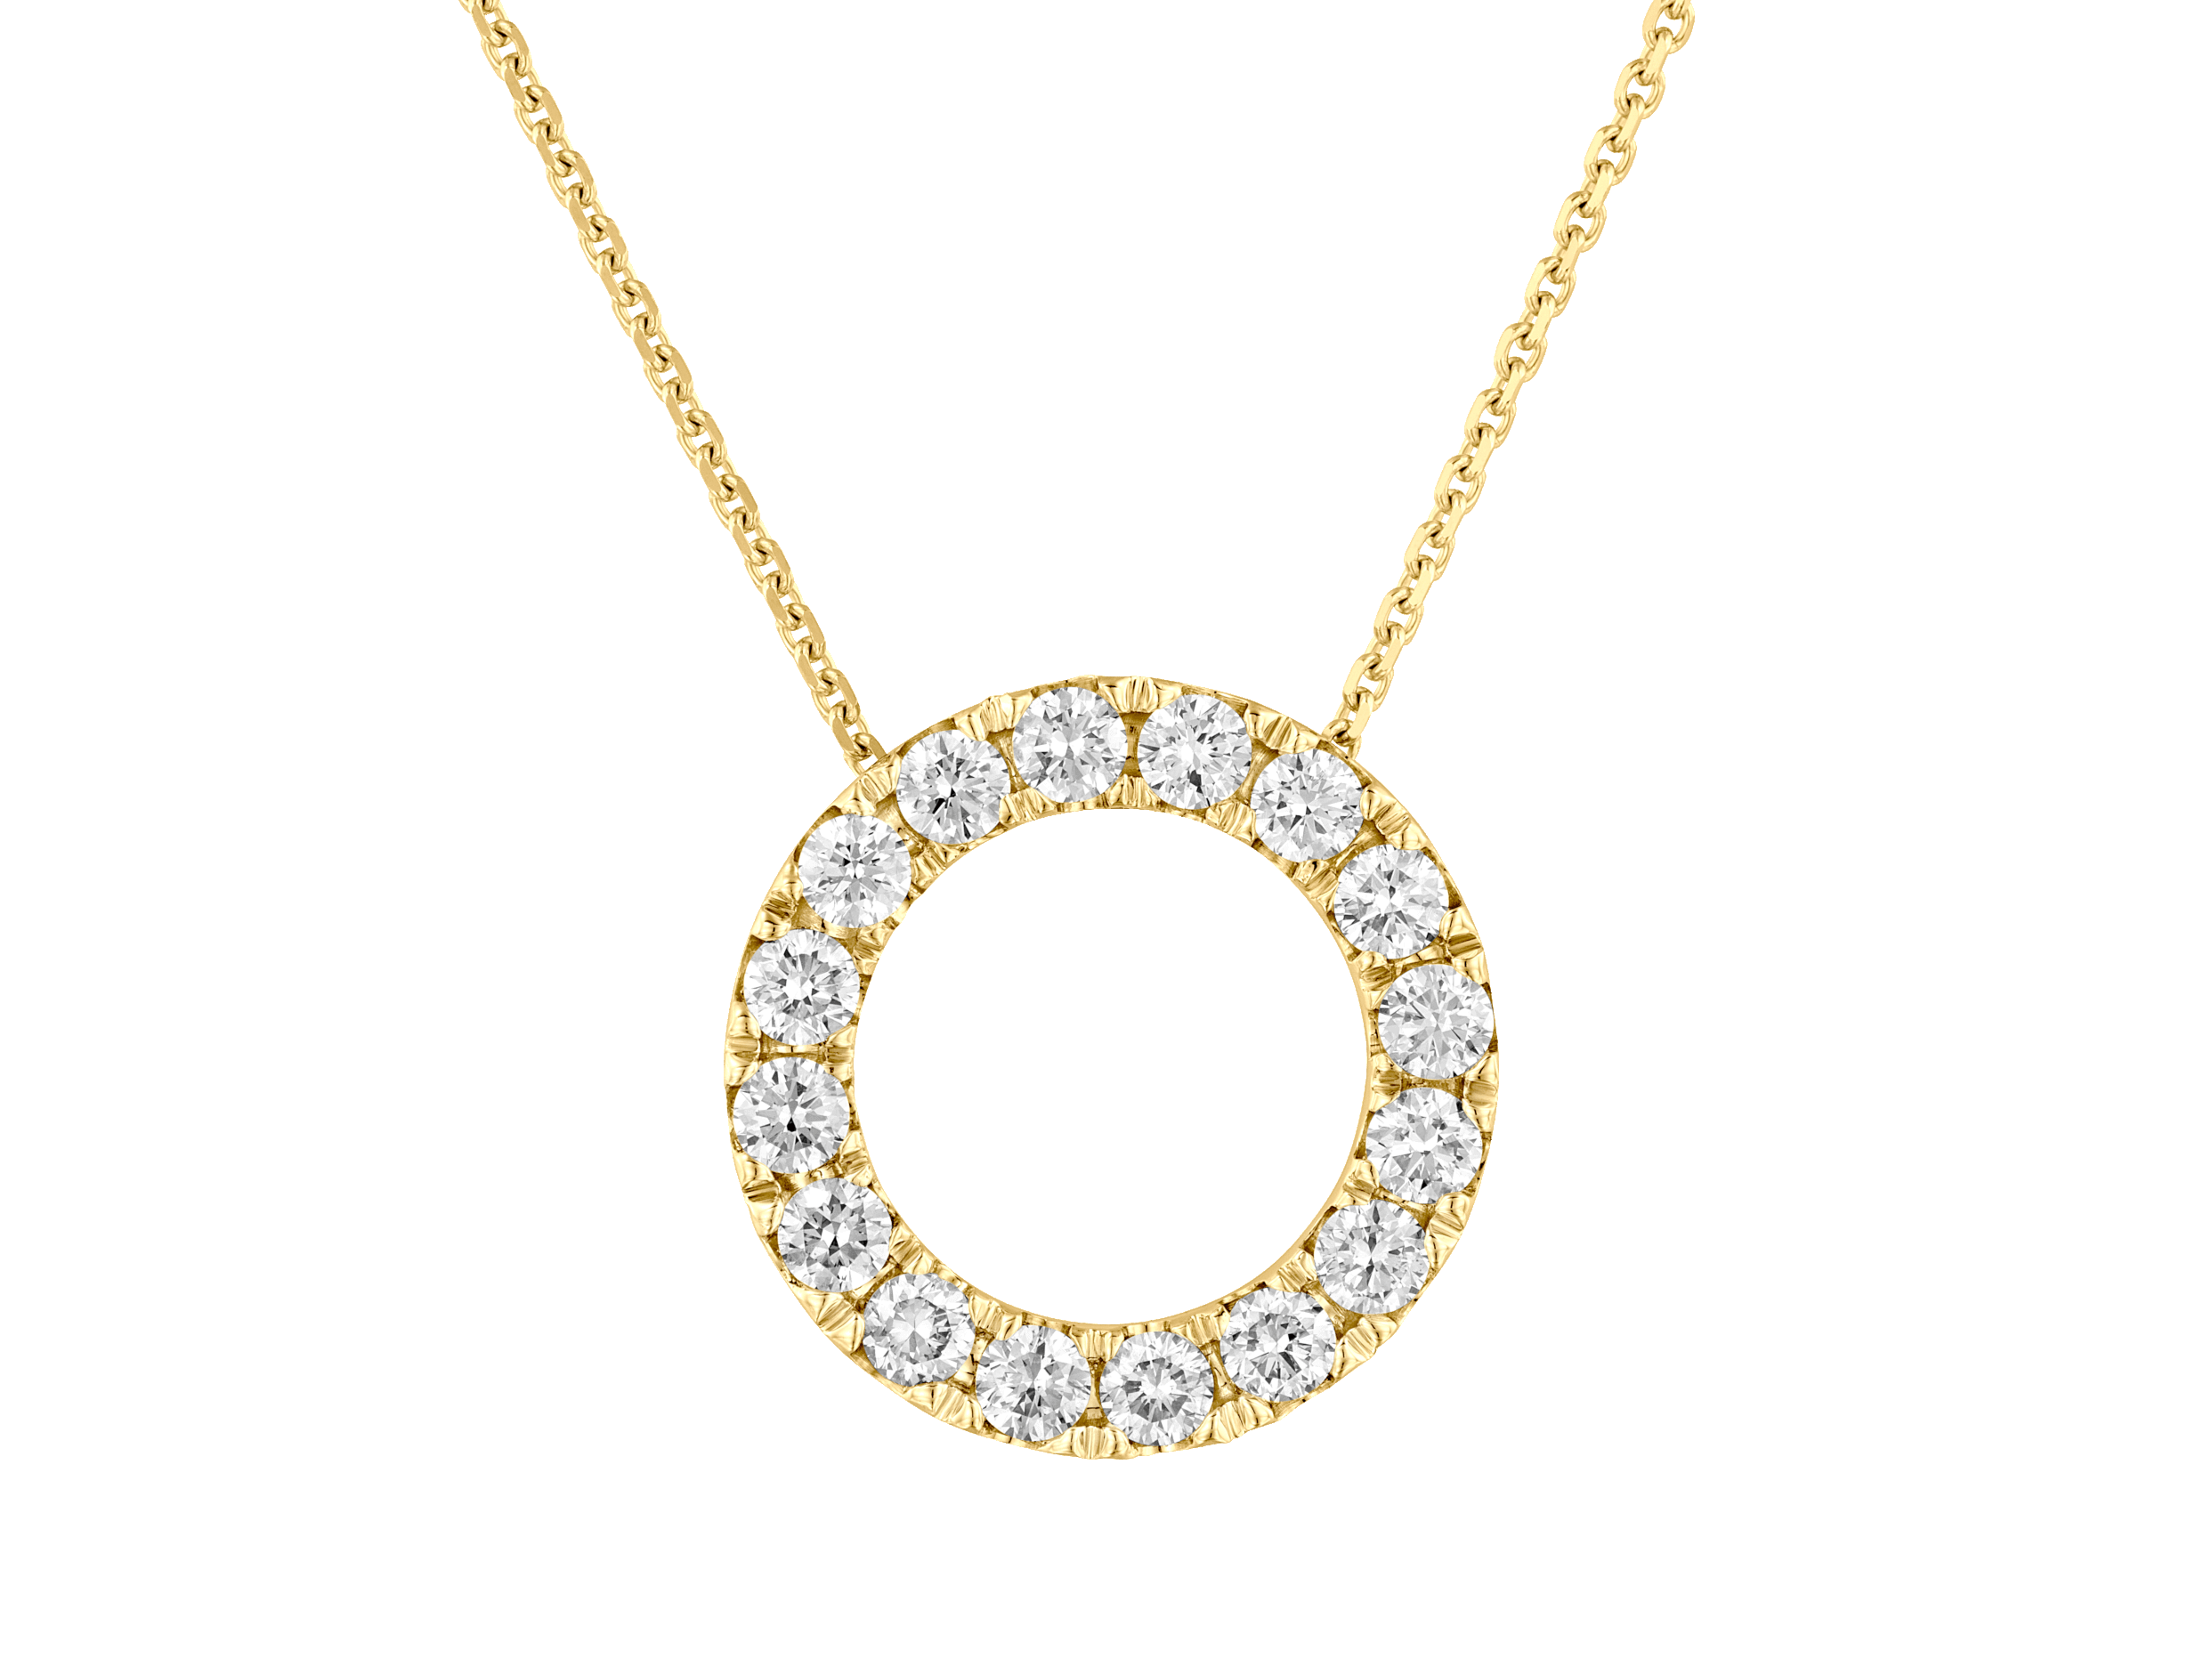 Diamond Necklaces 4x3